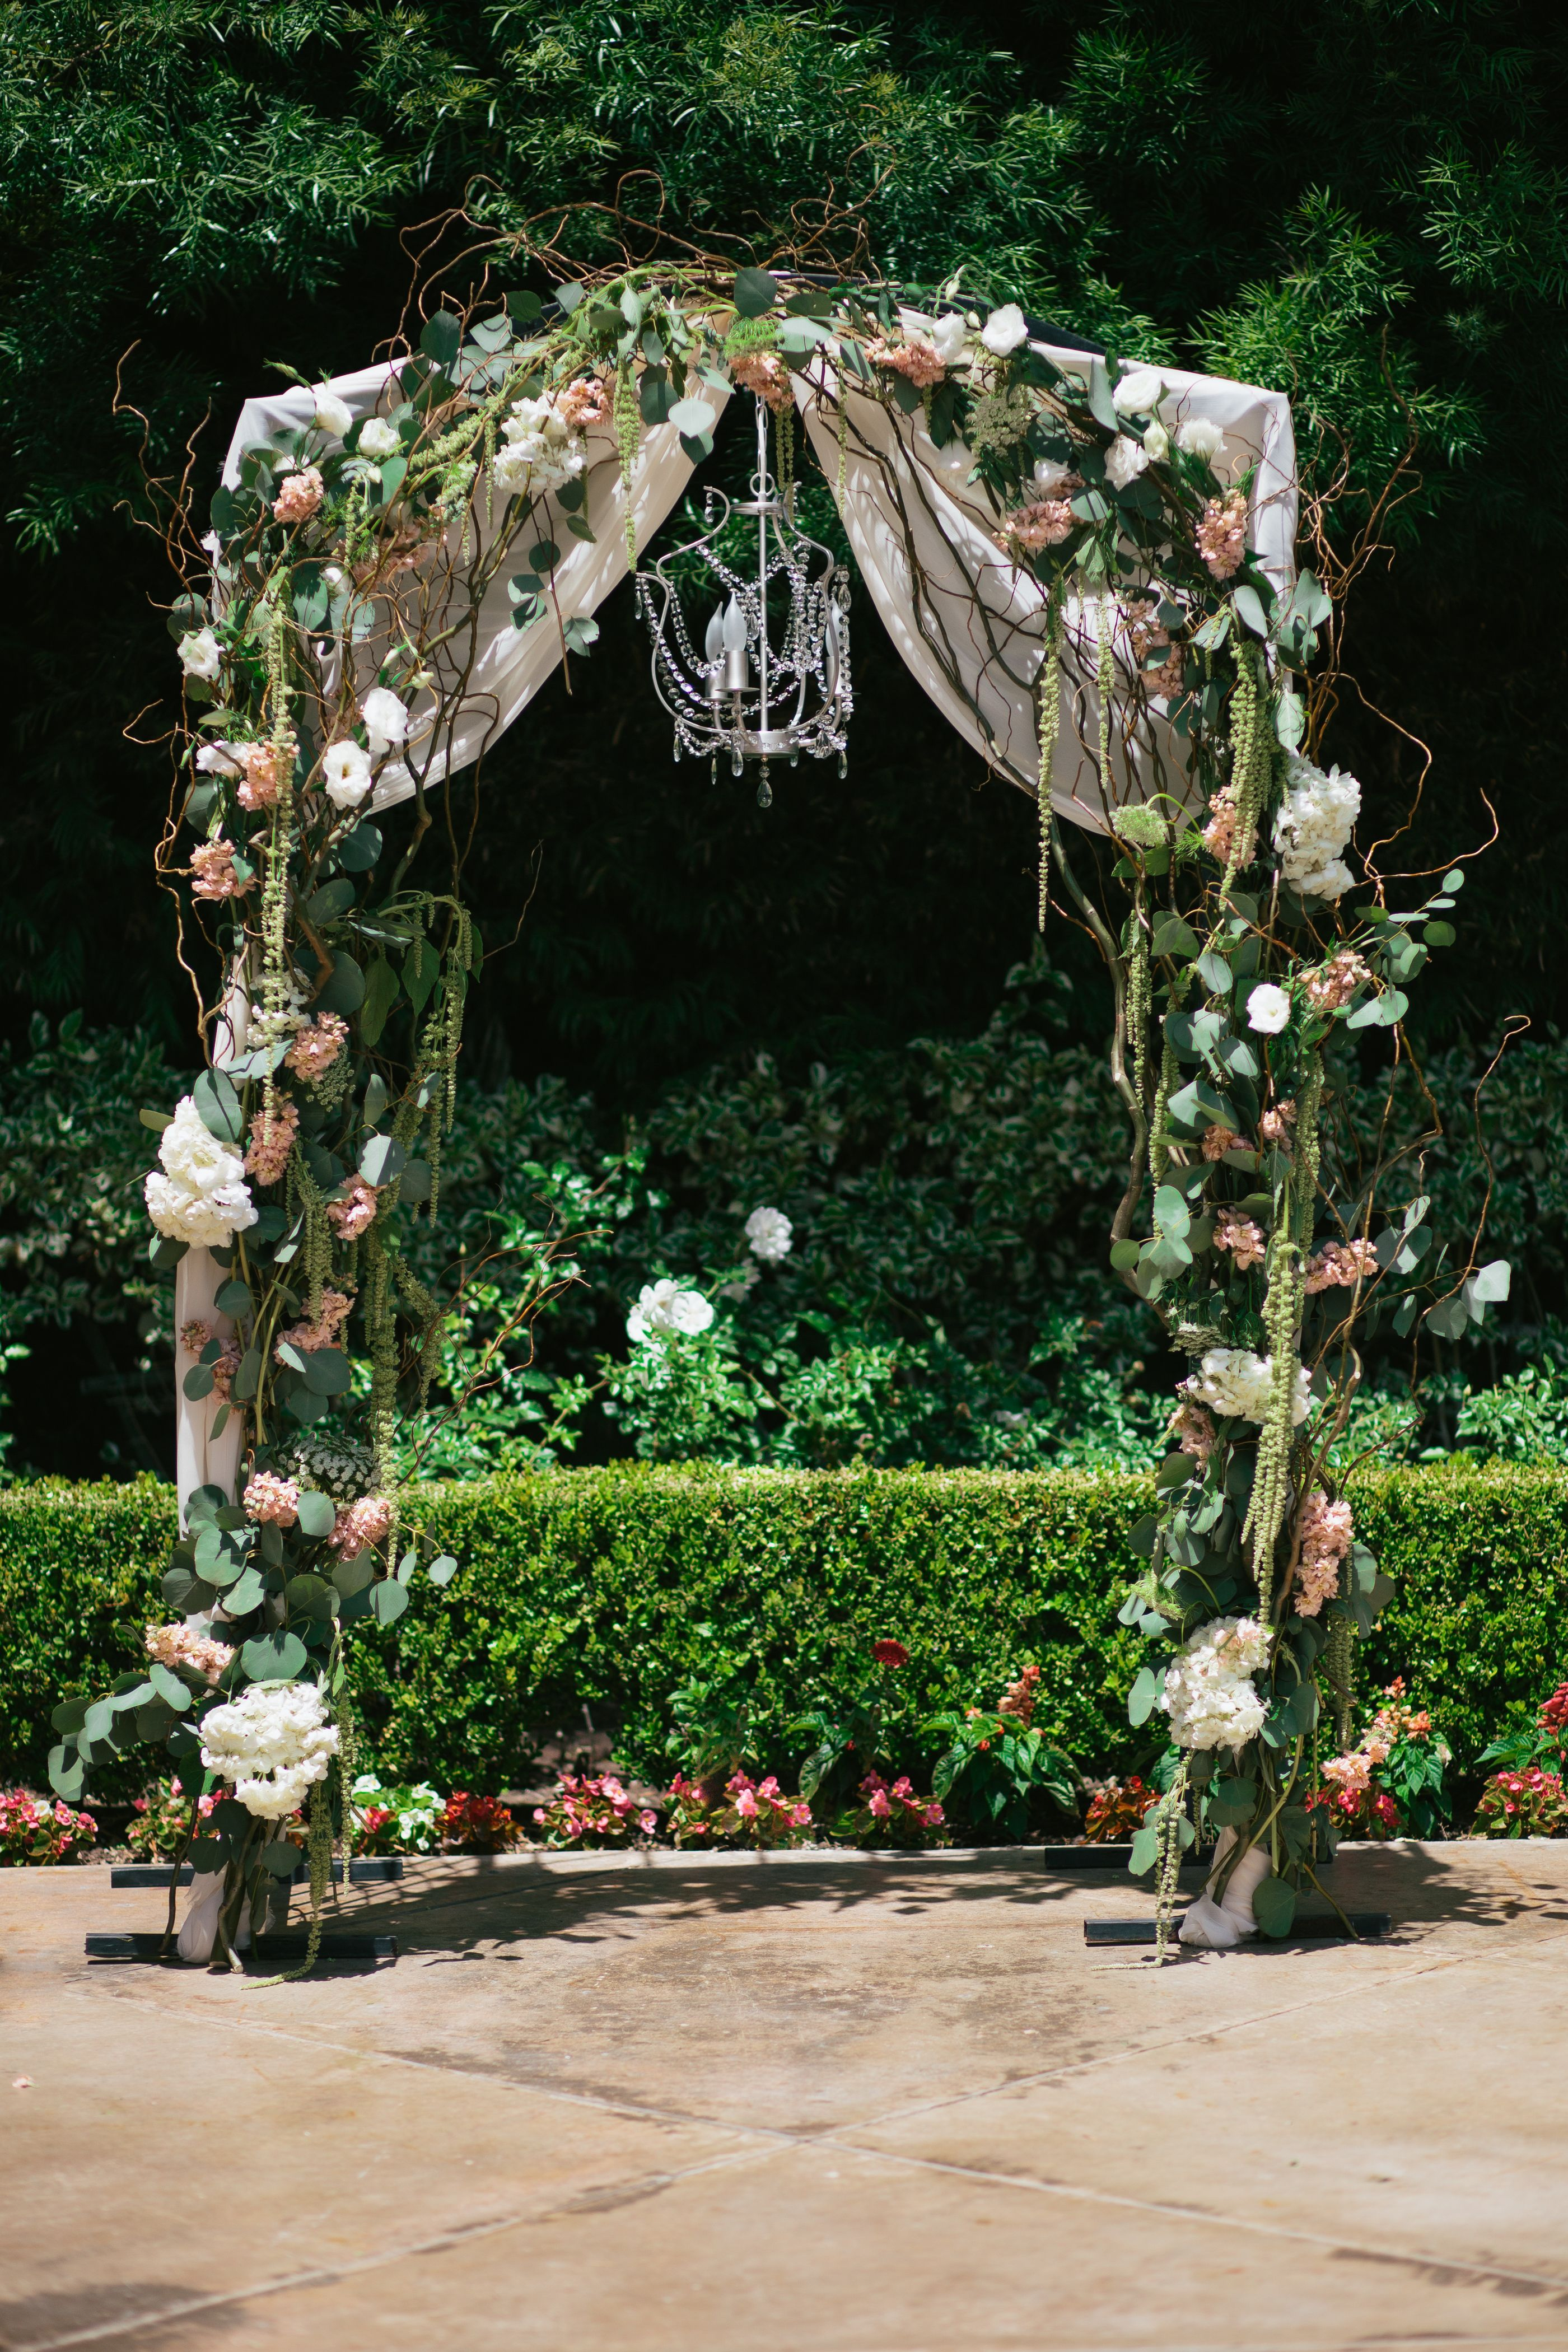 Wedding Arch With Chiffon Draping And Chandelier For Added Touches